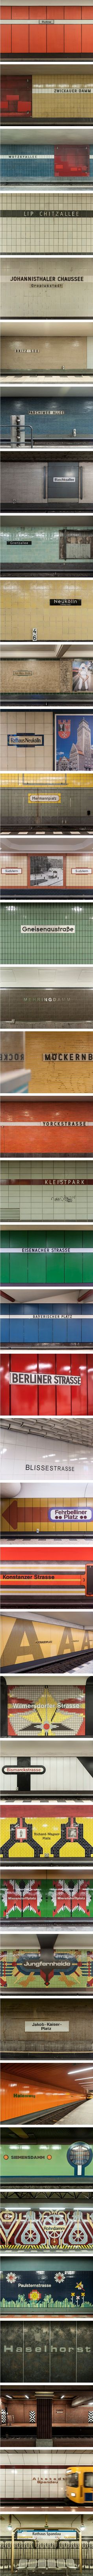 U7 station names from Rudow to Rathaus Spandau, by Kate Seabrook. (Photo by Kate Seabrook. All Rights Reserved).